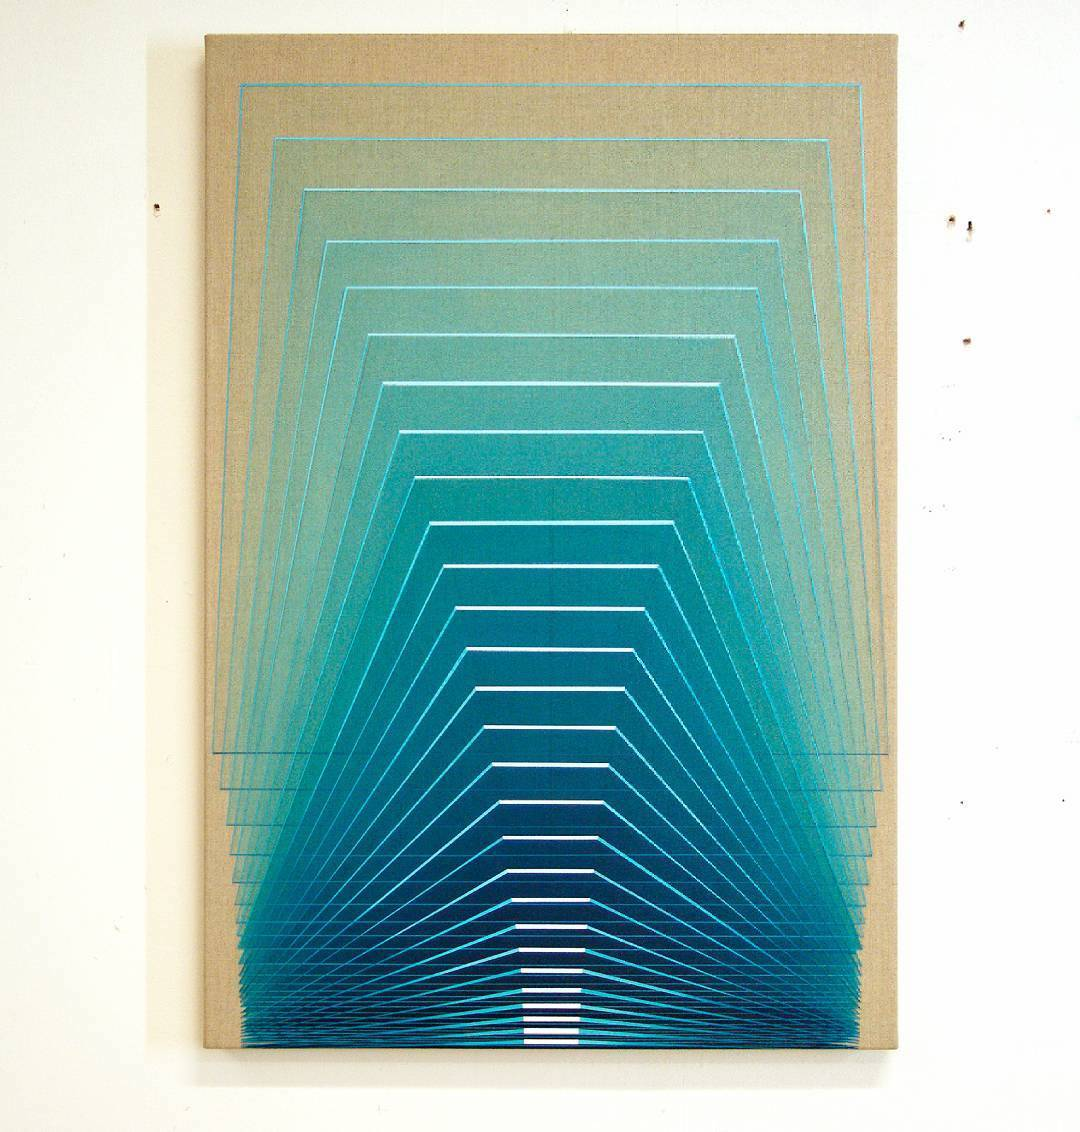 Collaborative Acrylic Paintings That Aim to Visually Map the Perceptual Experiences of Synesthesia